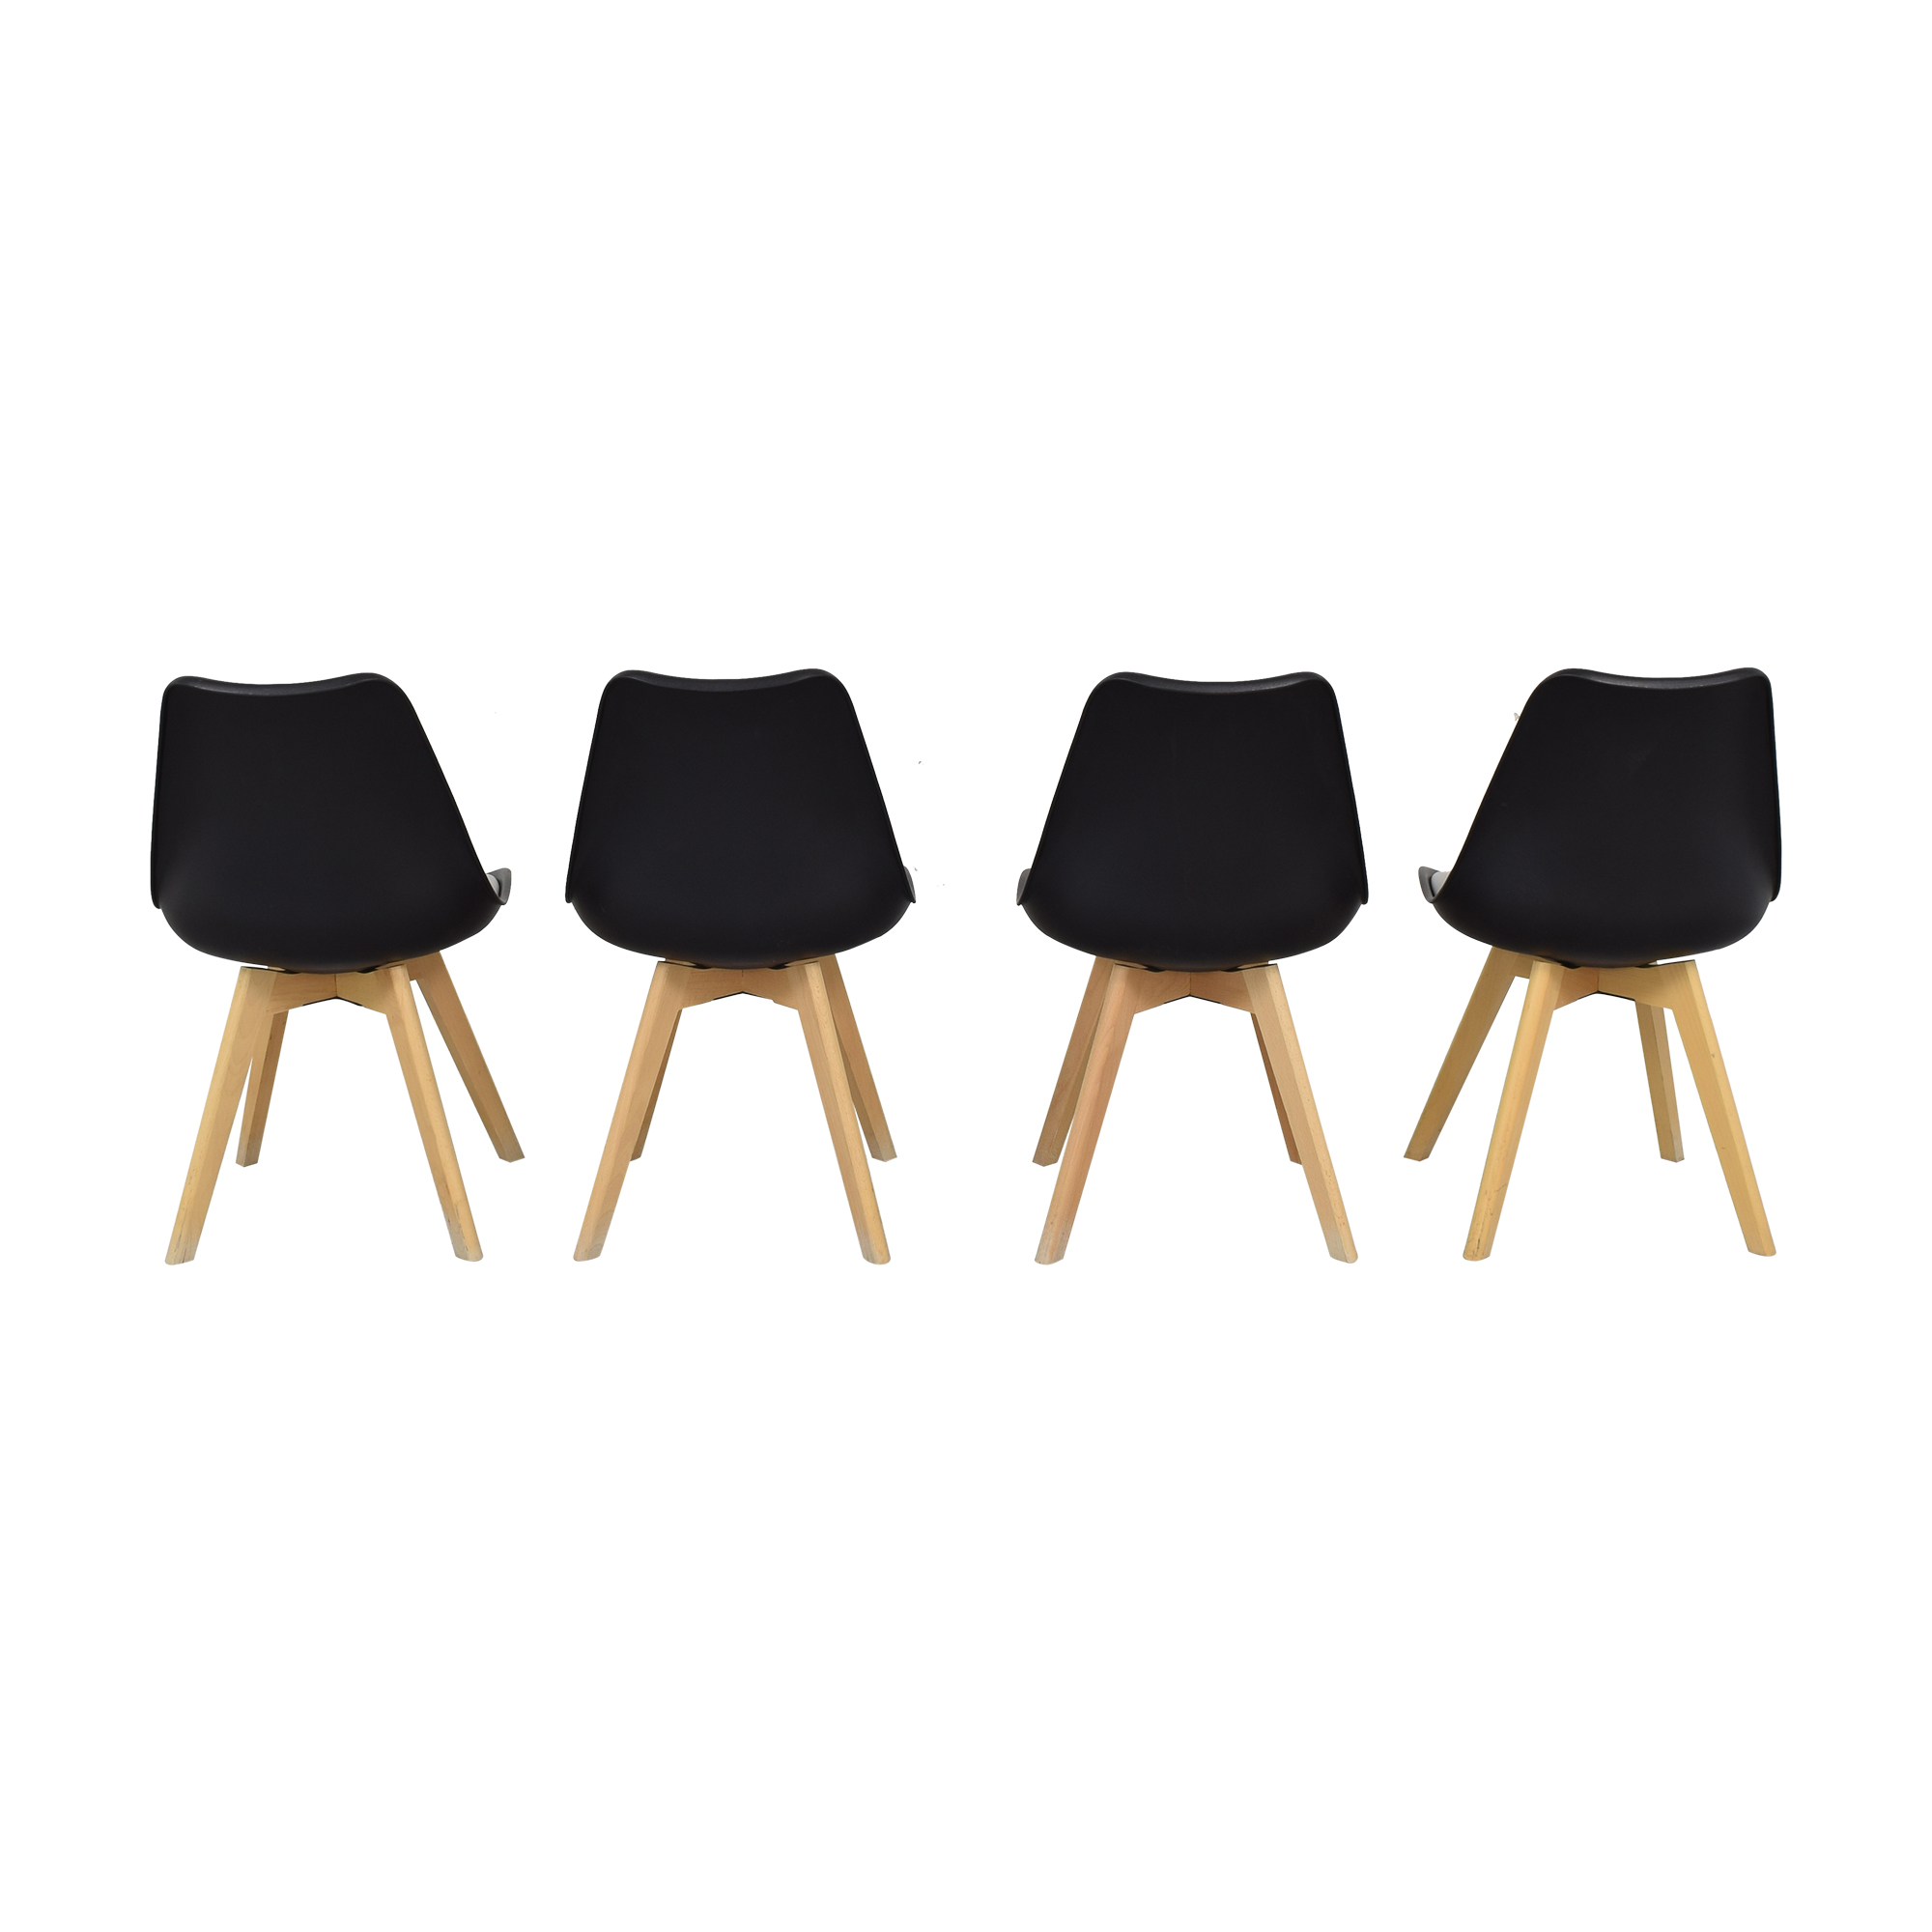 Black Molded Plastic Chairs with Wooden Legs pa